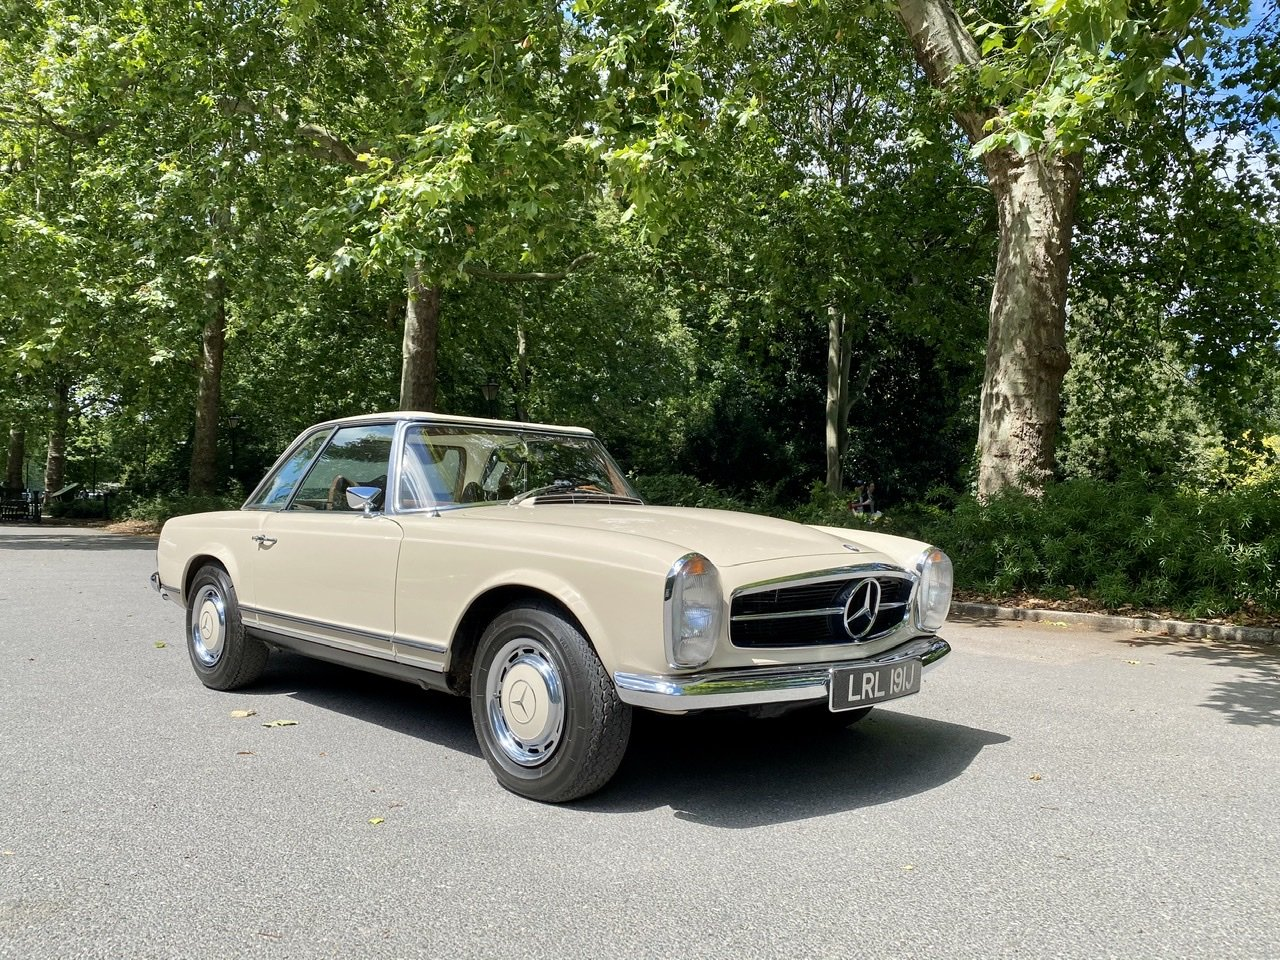 1970 Mercedes-Benz 280 SL 'Pagoda' For Sale (picture 2 of 24)